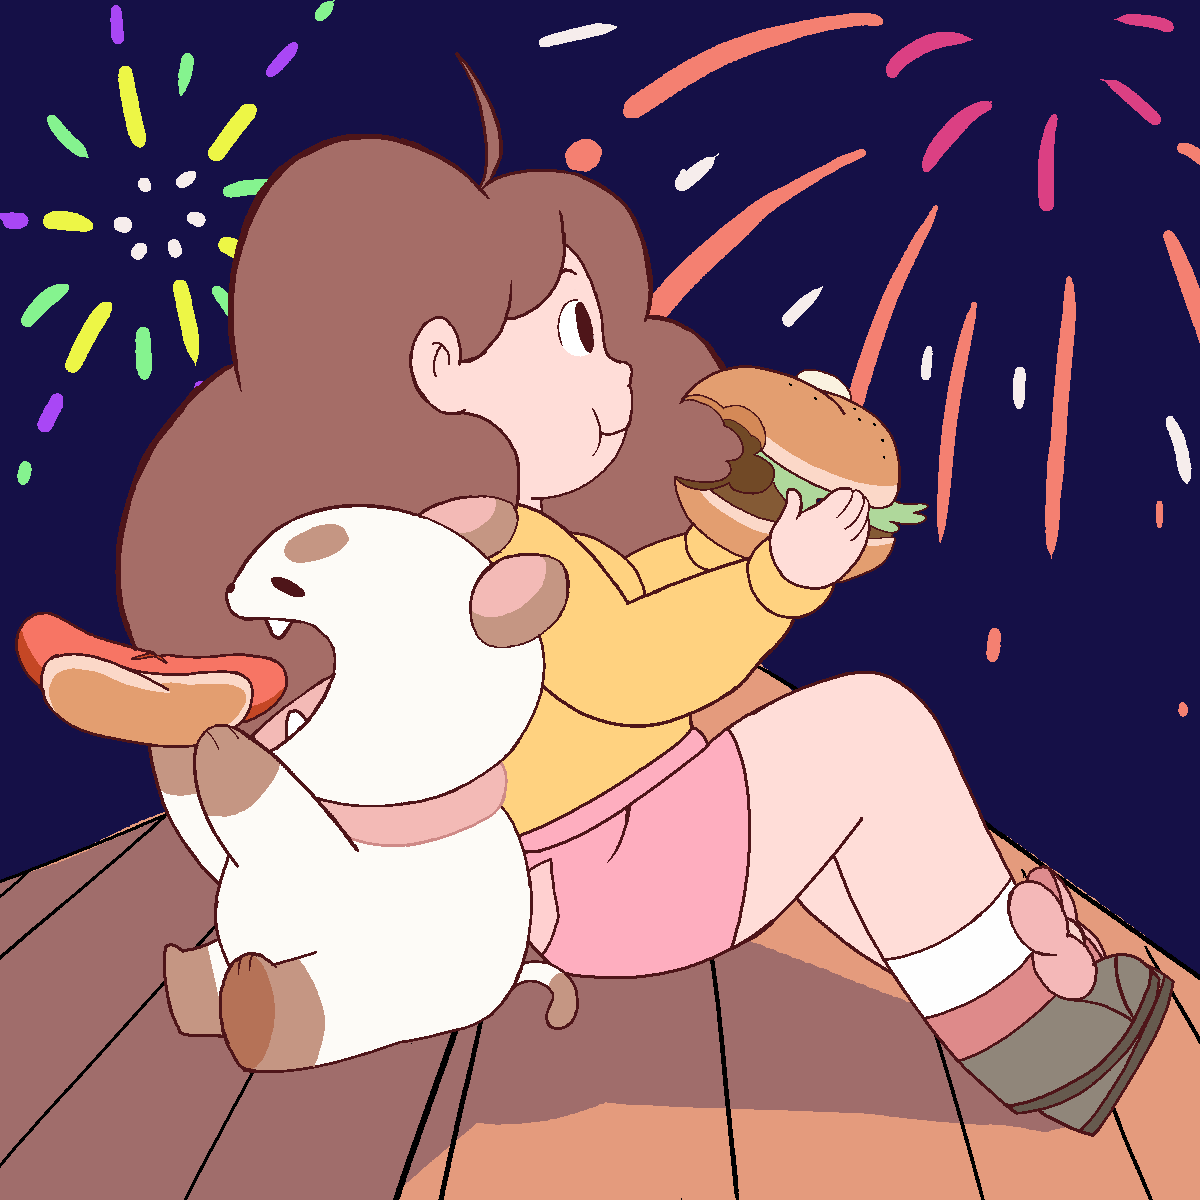 bpc_july4_v15.png